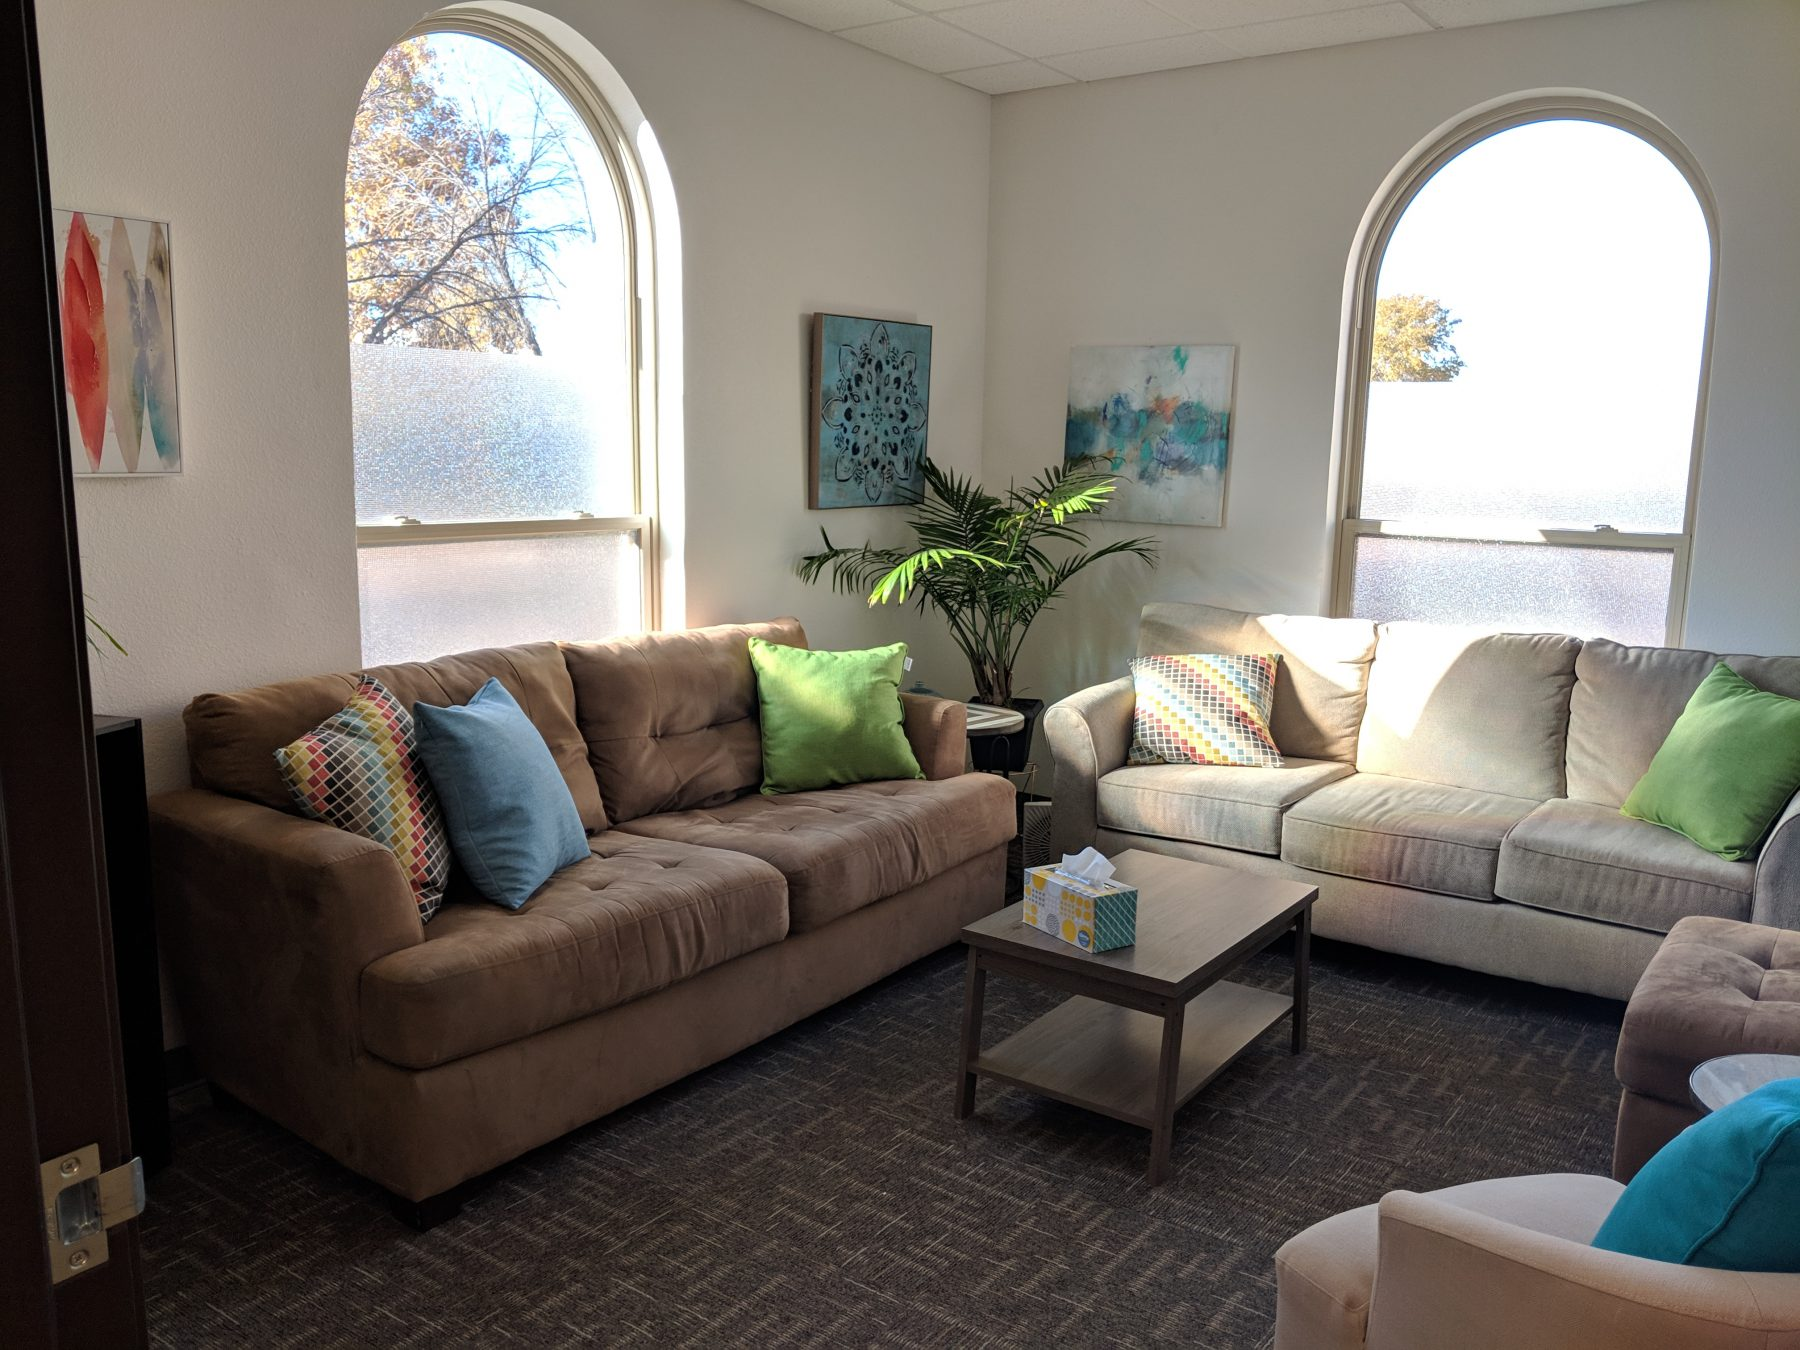 Therapy Room at Elevation Counseling in Albuquerque for individual psychotherapy, couples counseling, family counseling, mental health therapy.